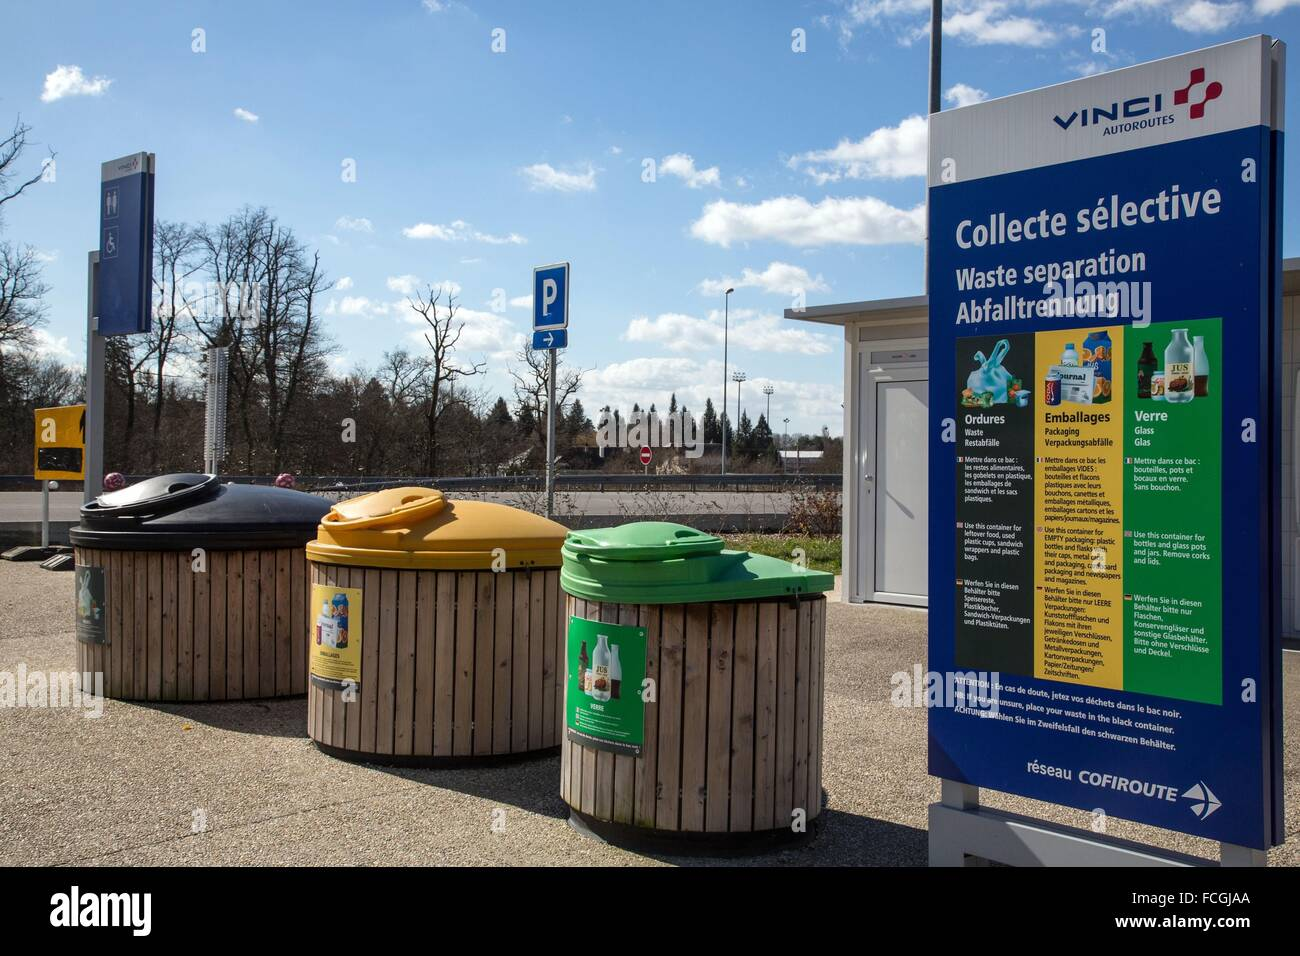 WASTE SEPARATION, (45) LOIRET, CENTRE, FRANCE - Stock Image